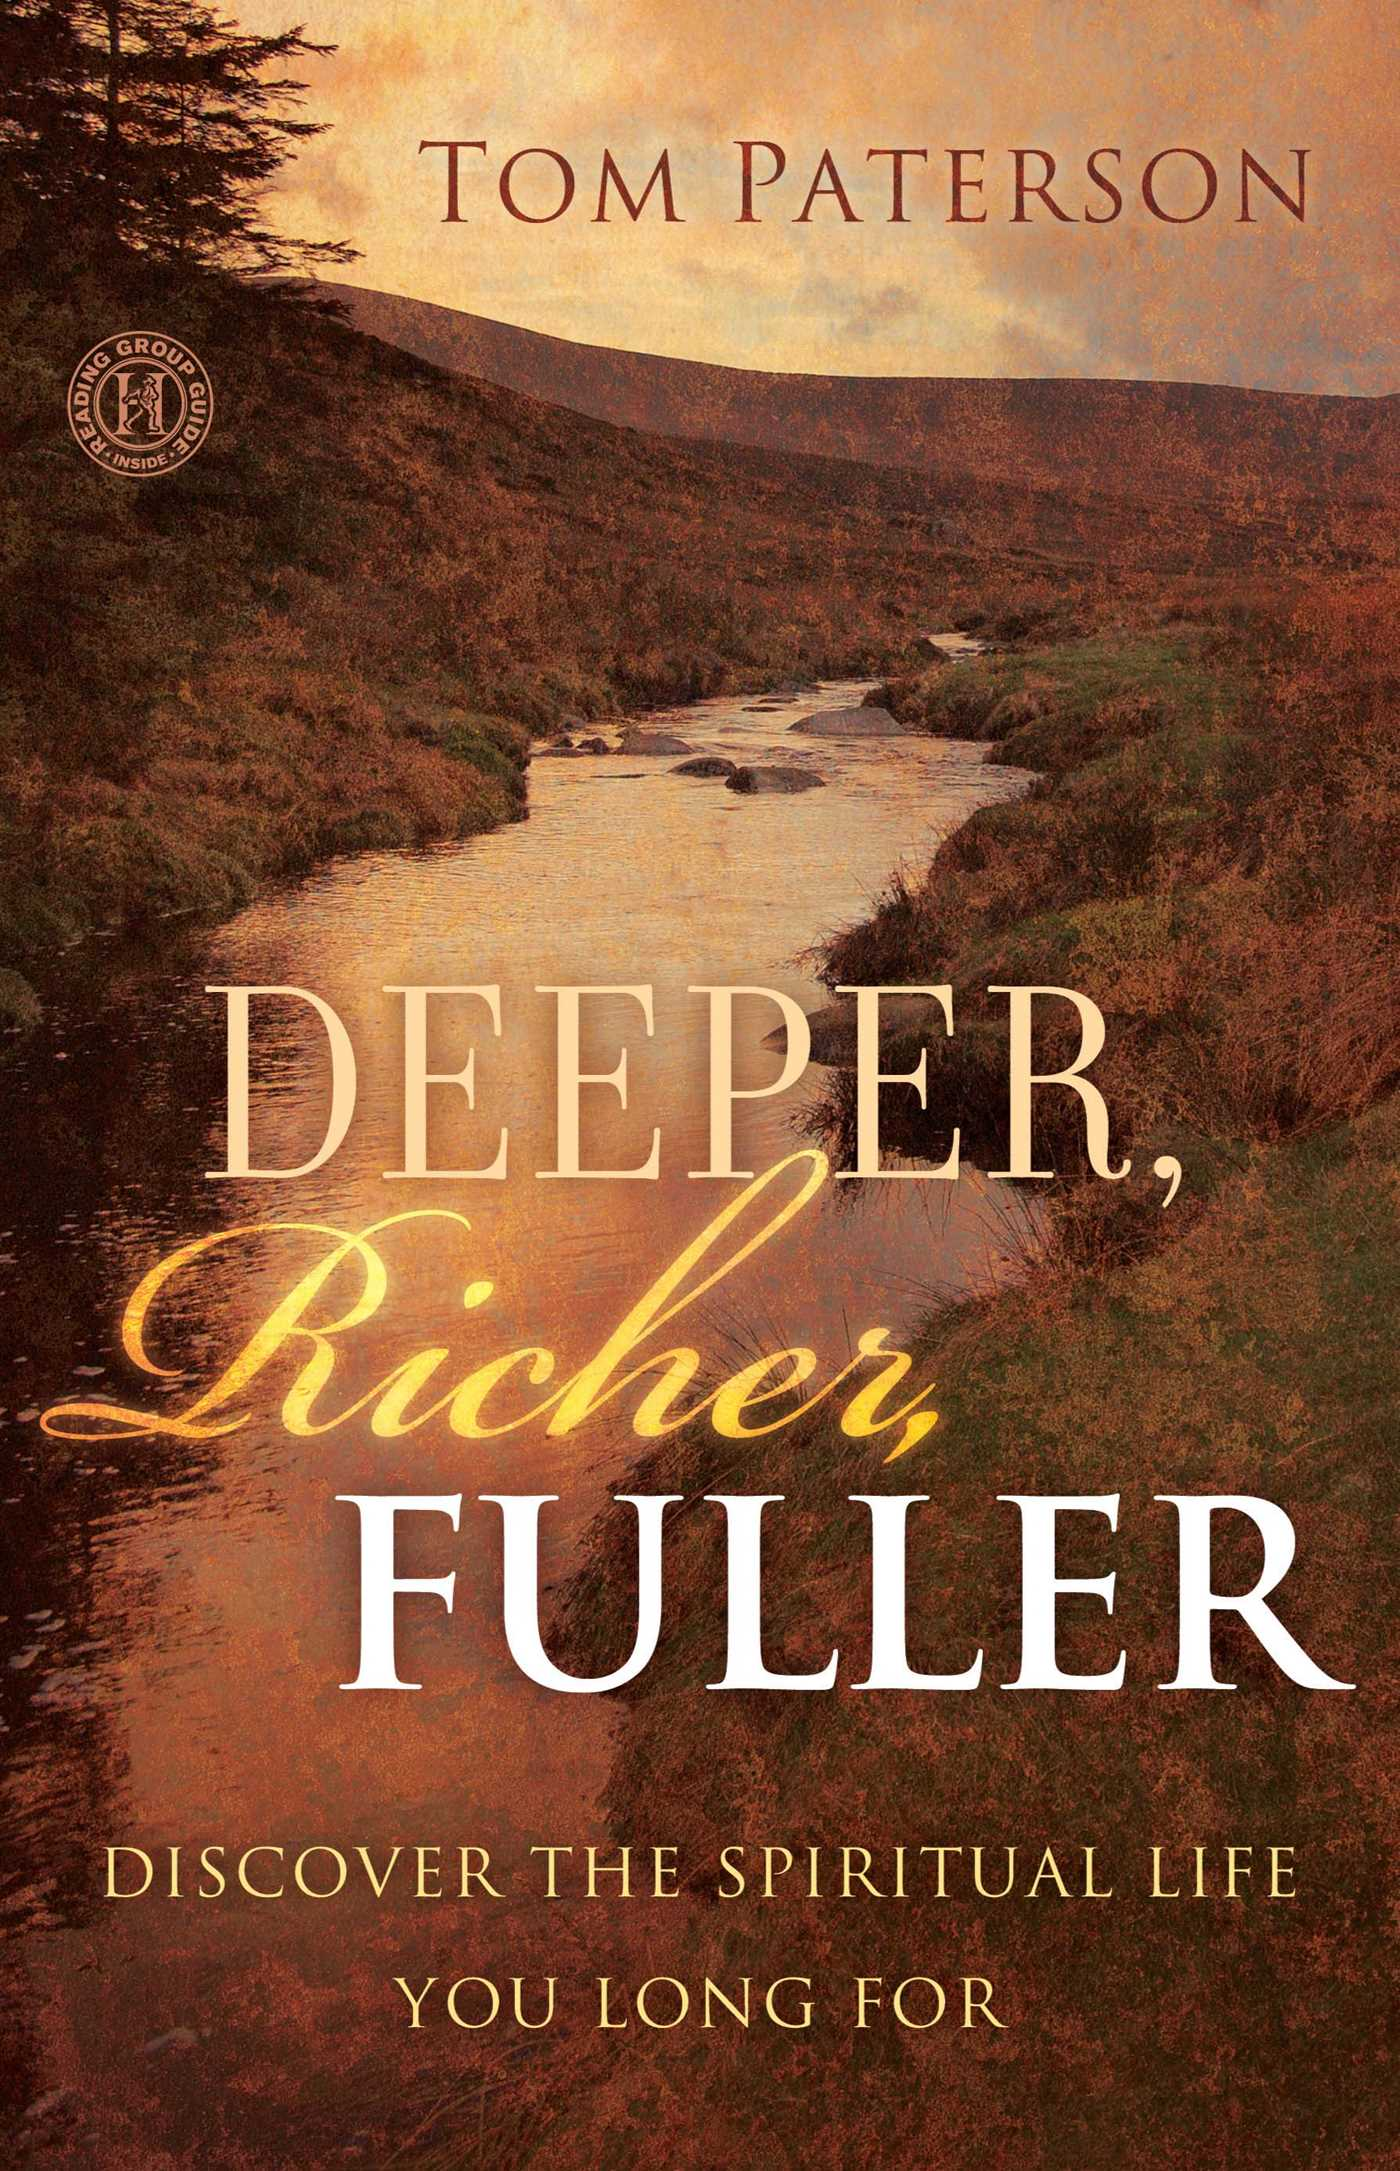 Deeper-richer-fuller-9781439135693_hr